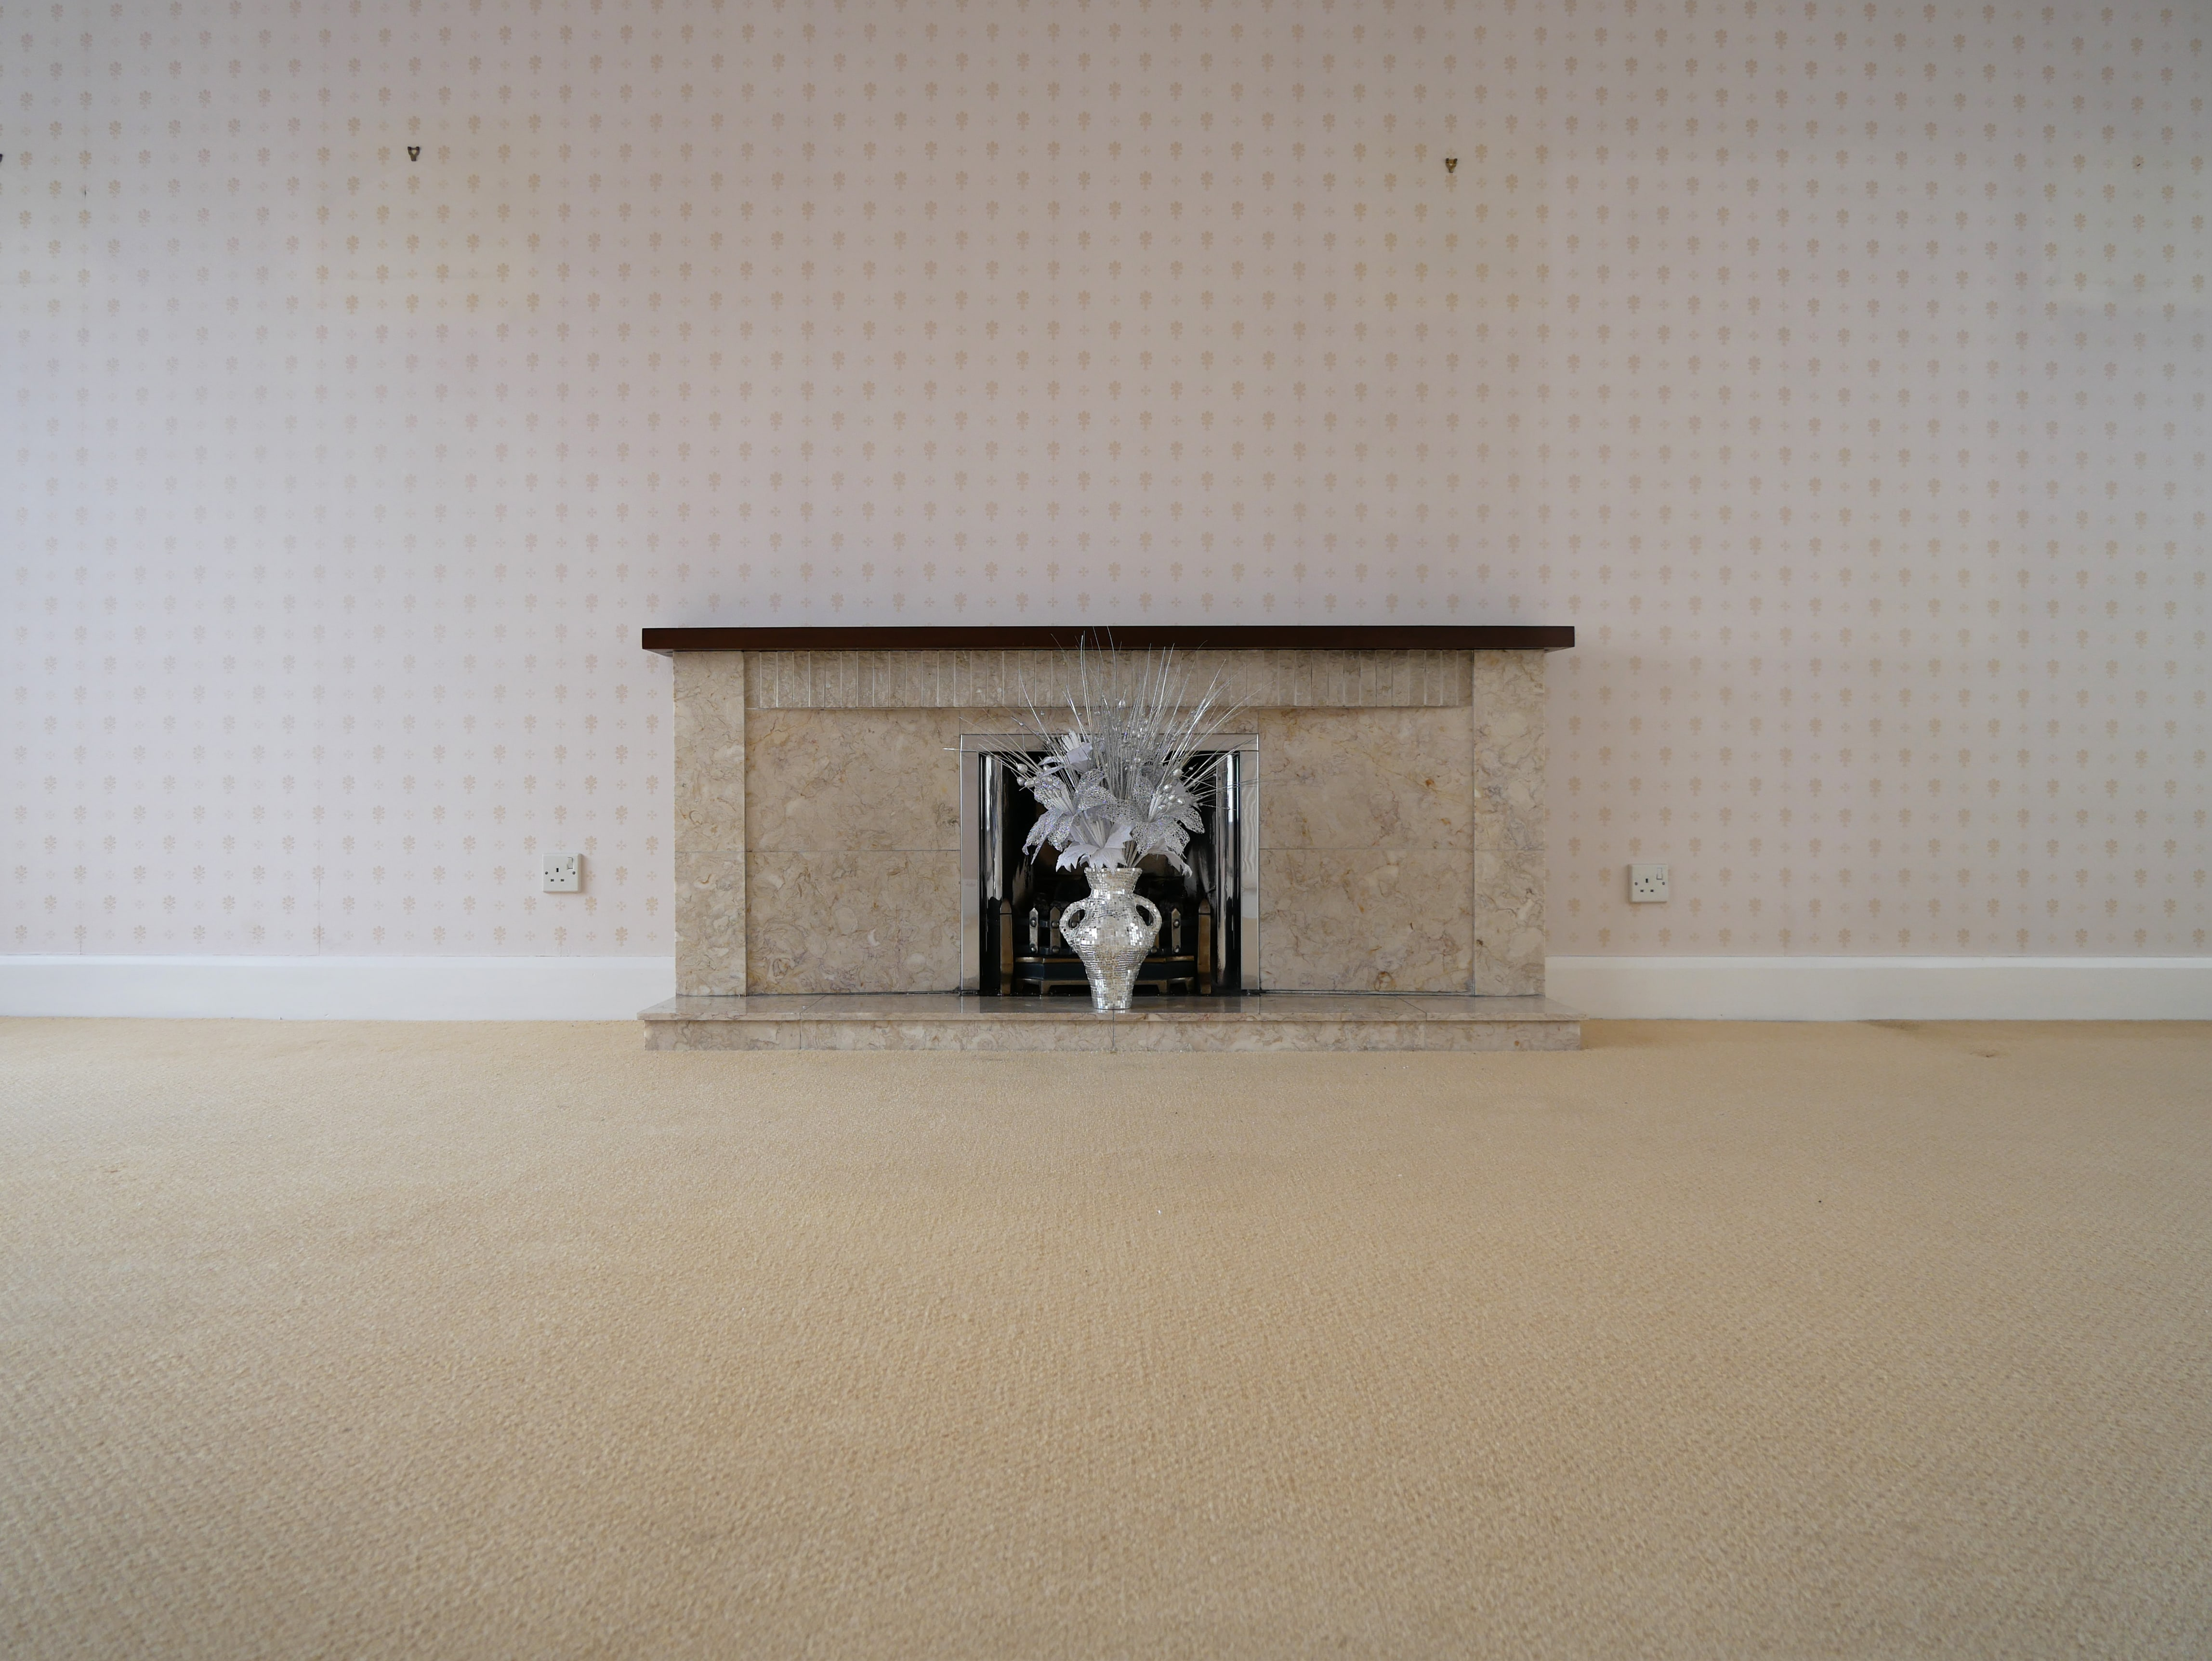 An installation shot of a vase with a mirrored surface, which holds an arrangement of artificial, glittery, silver and white flowers and sits on a mantelpiece.